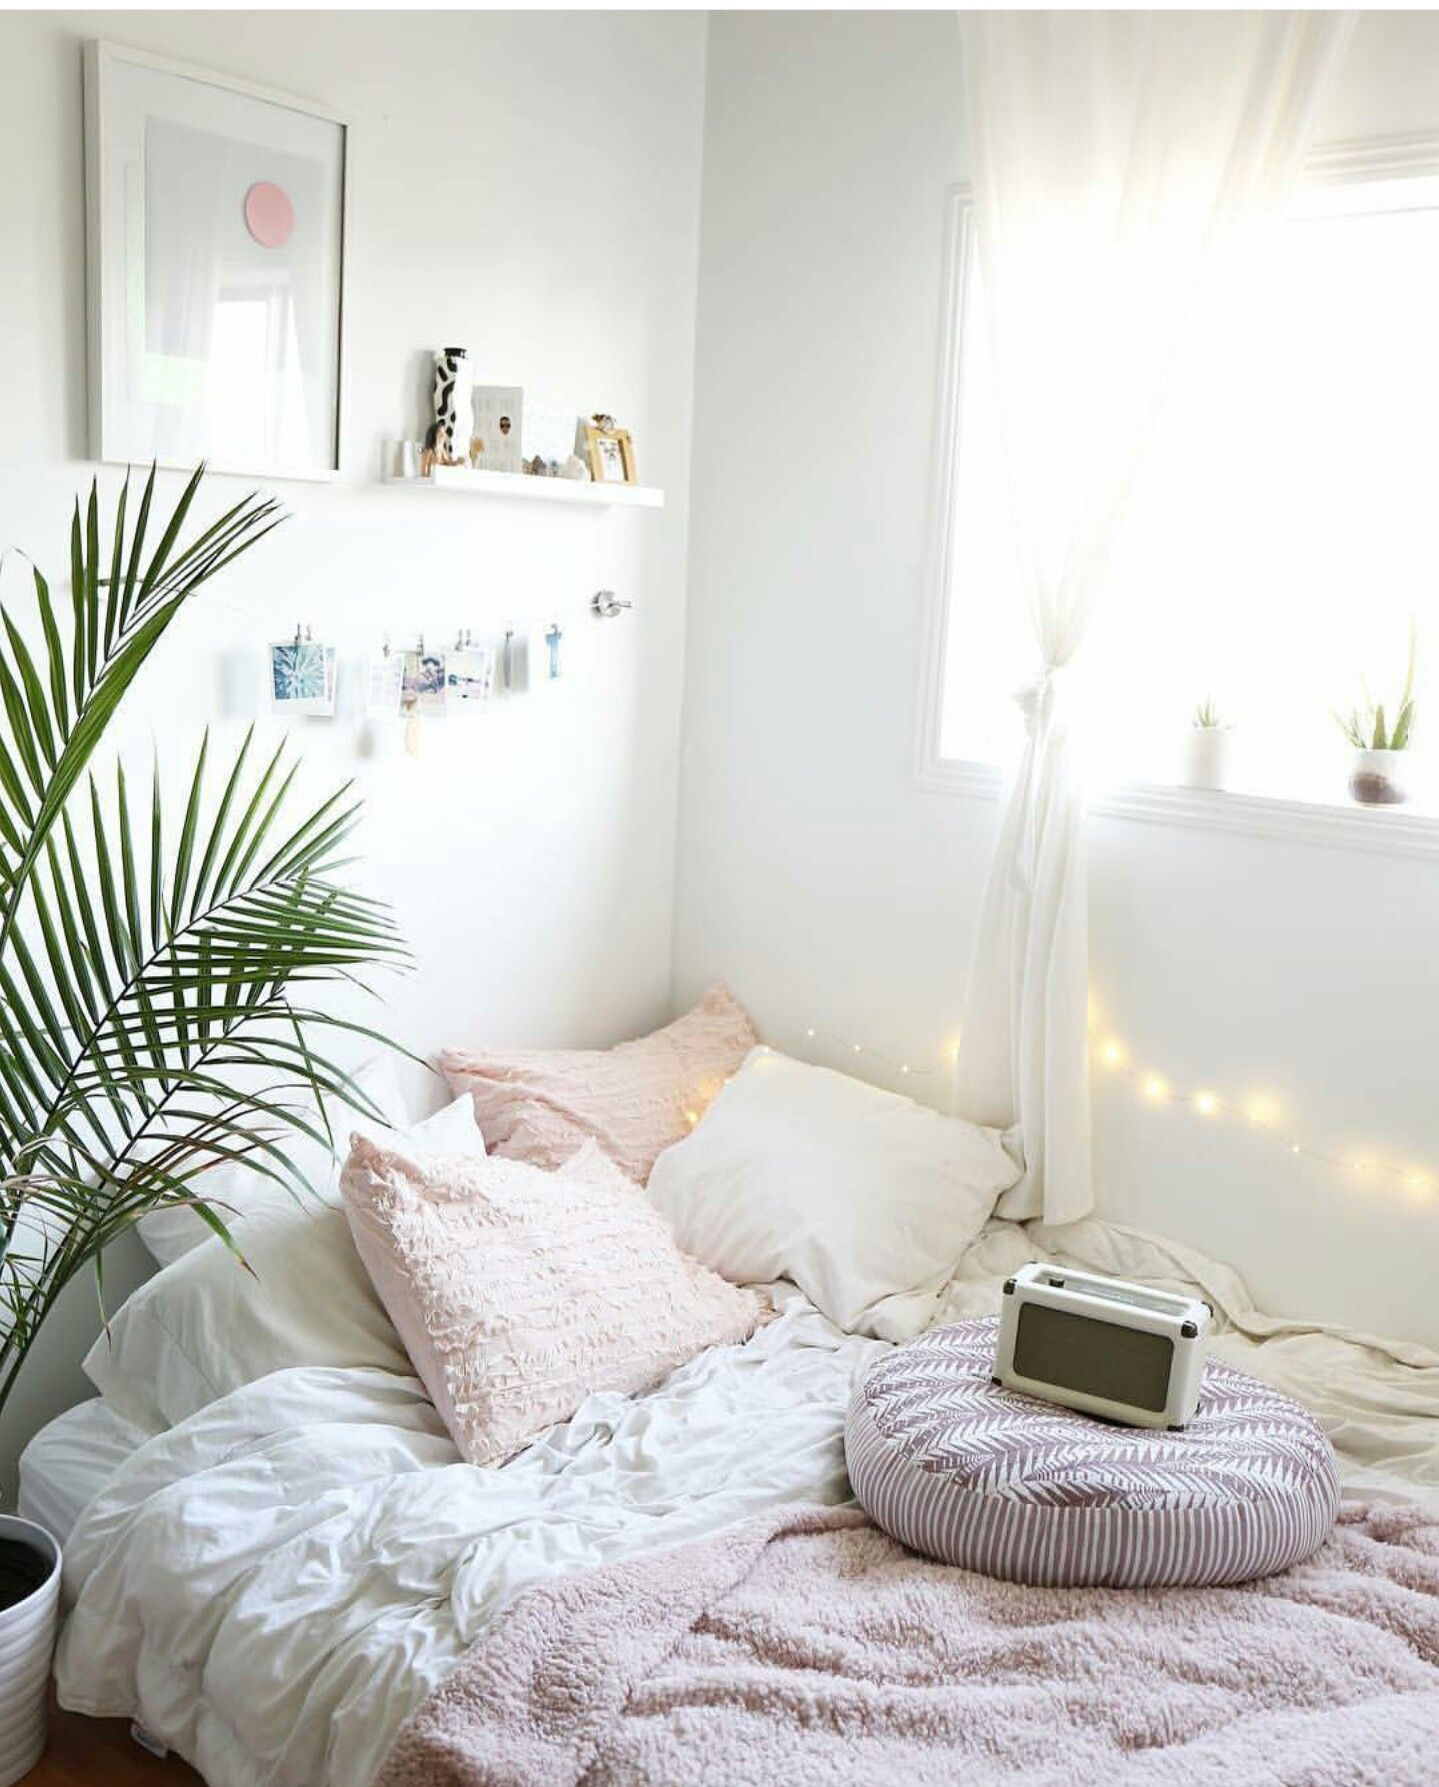 Zen Bedroom Ideas Pinterest Pin By Victoria Nicole On Home Decor Pinterest